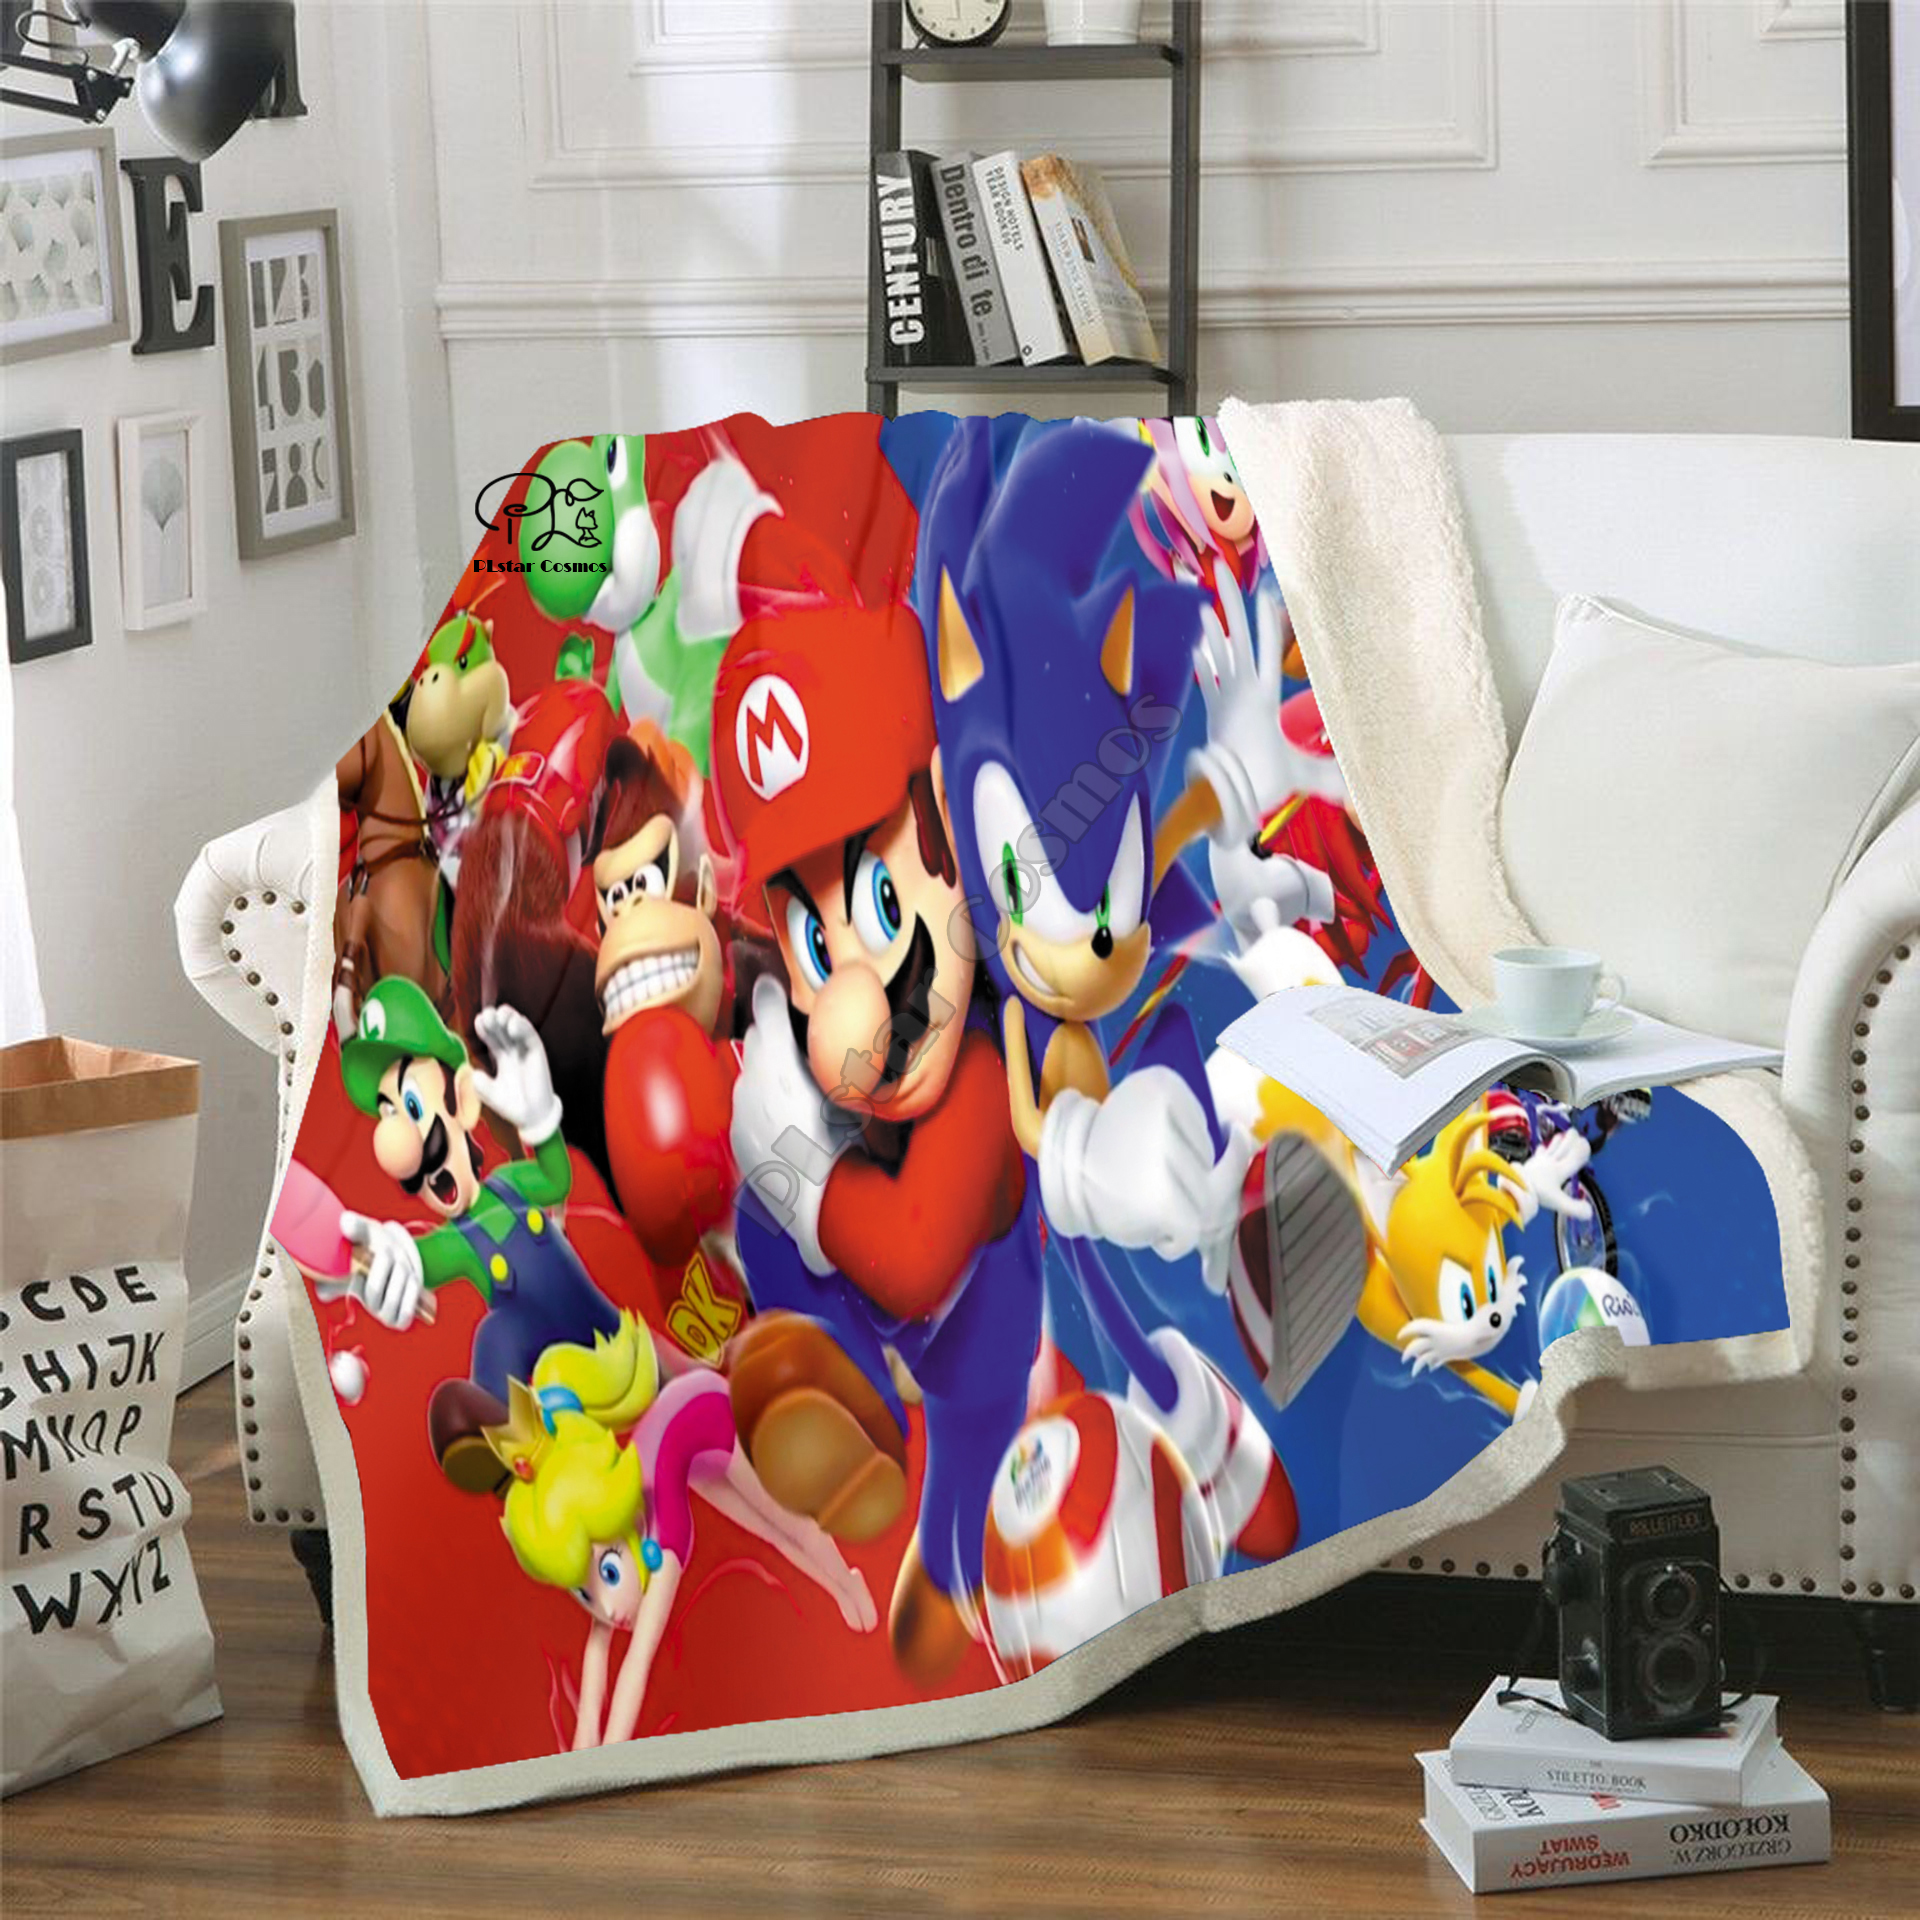 Kids Anime Super Sonic Mario 3D Blanket Fleece Cartoon Bendy Print Children Warm Bed Throw Blanket newborn bayby Blanket 007